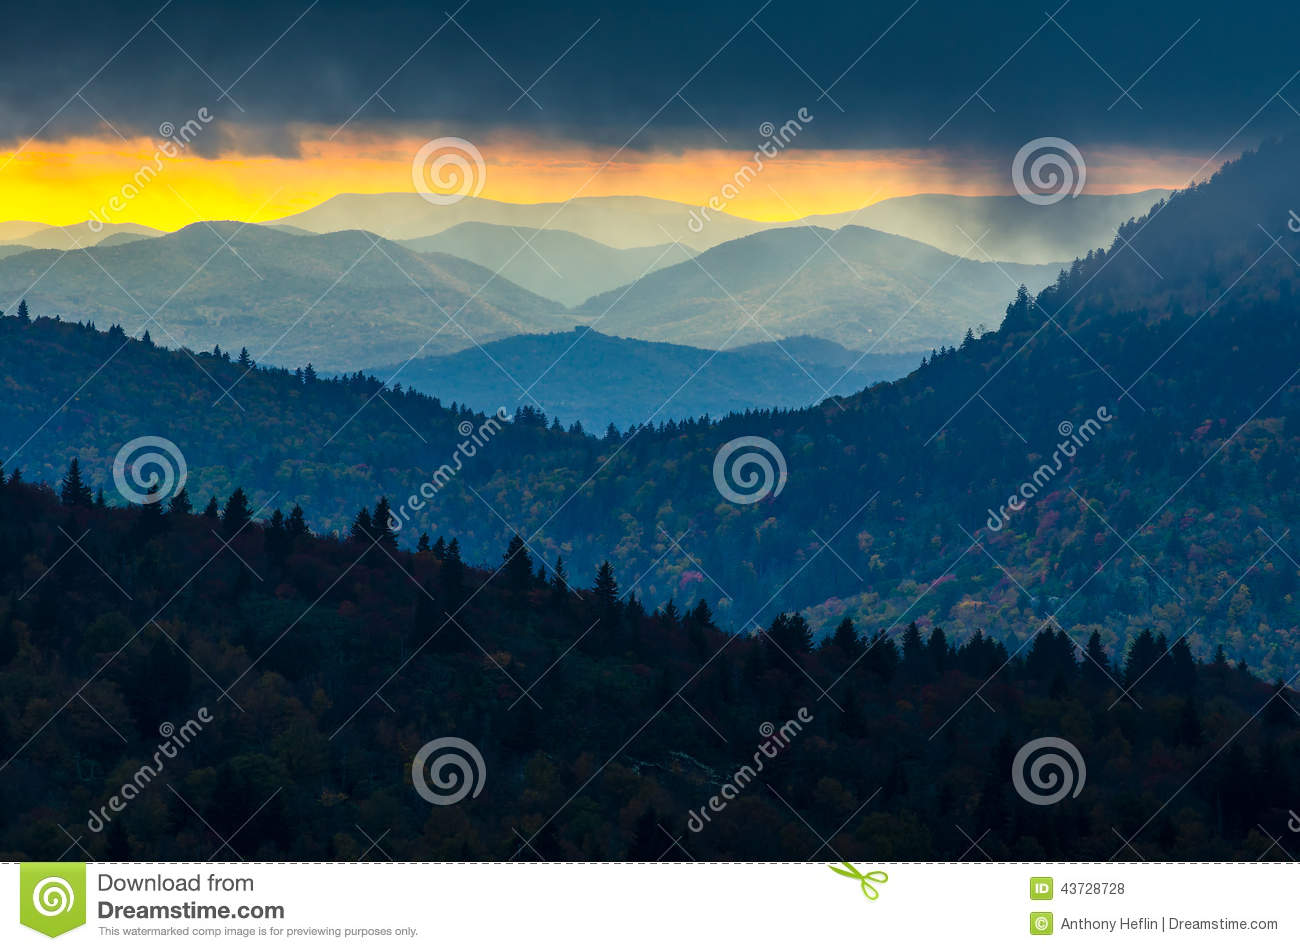 Fall Mountains In The Sun Wallpaper Sunset Black Balsam Knob Blue Ridge Parkway Stock Photo